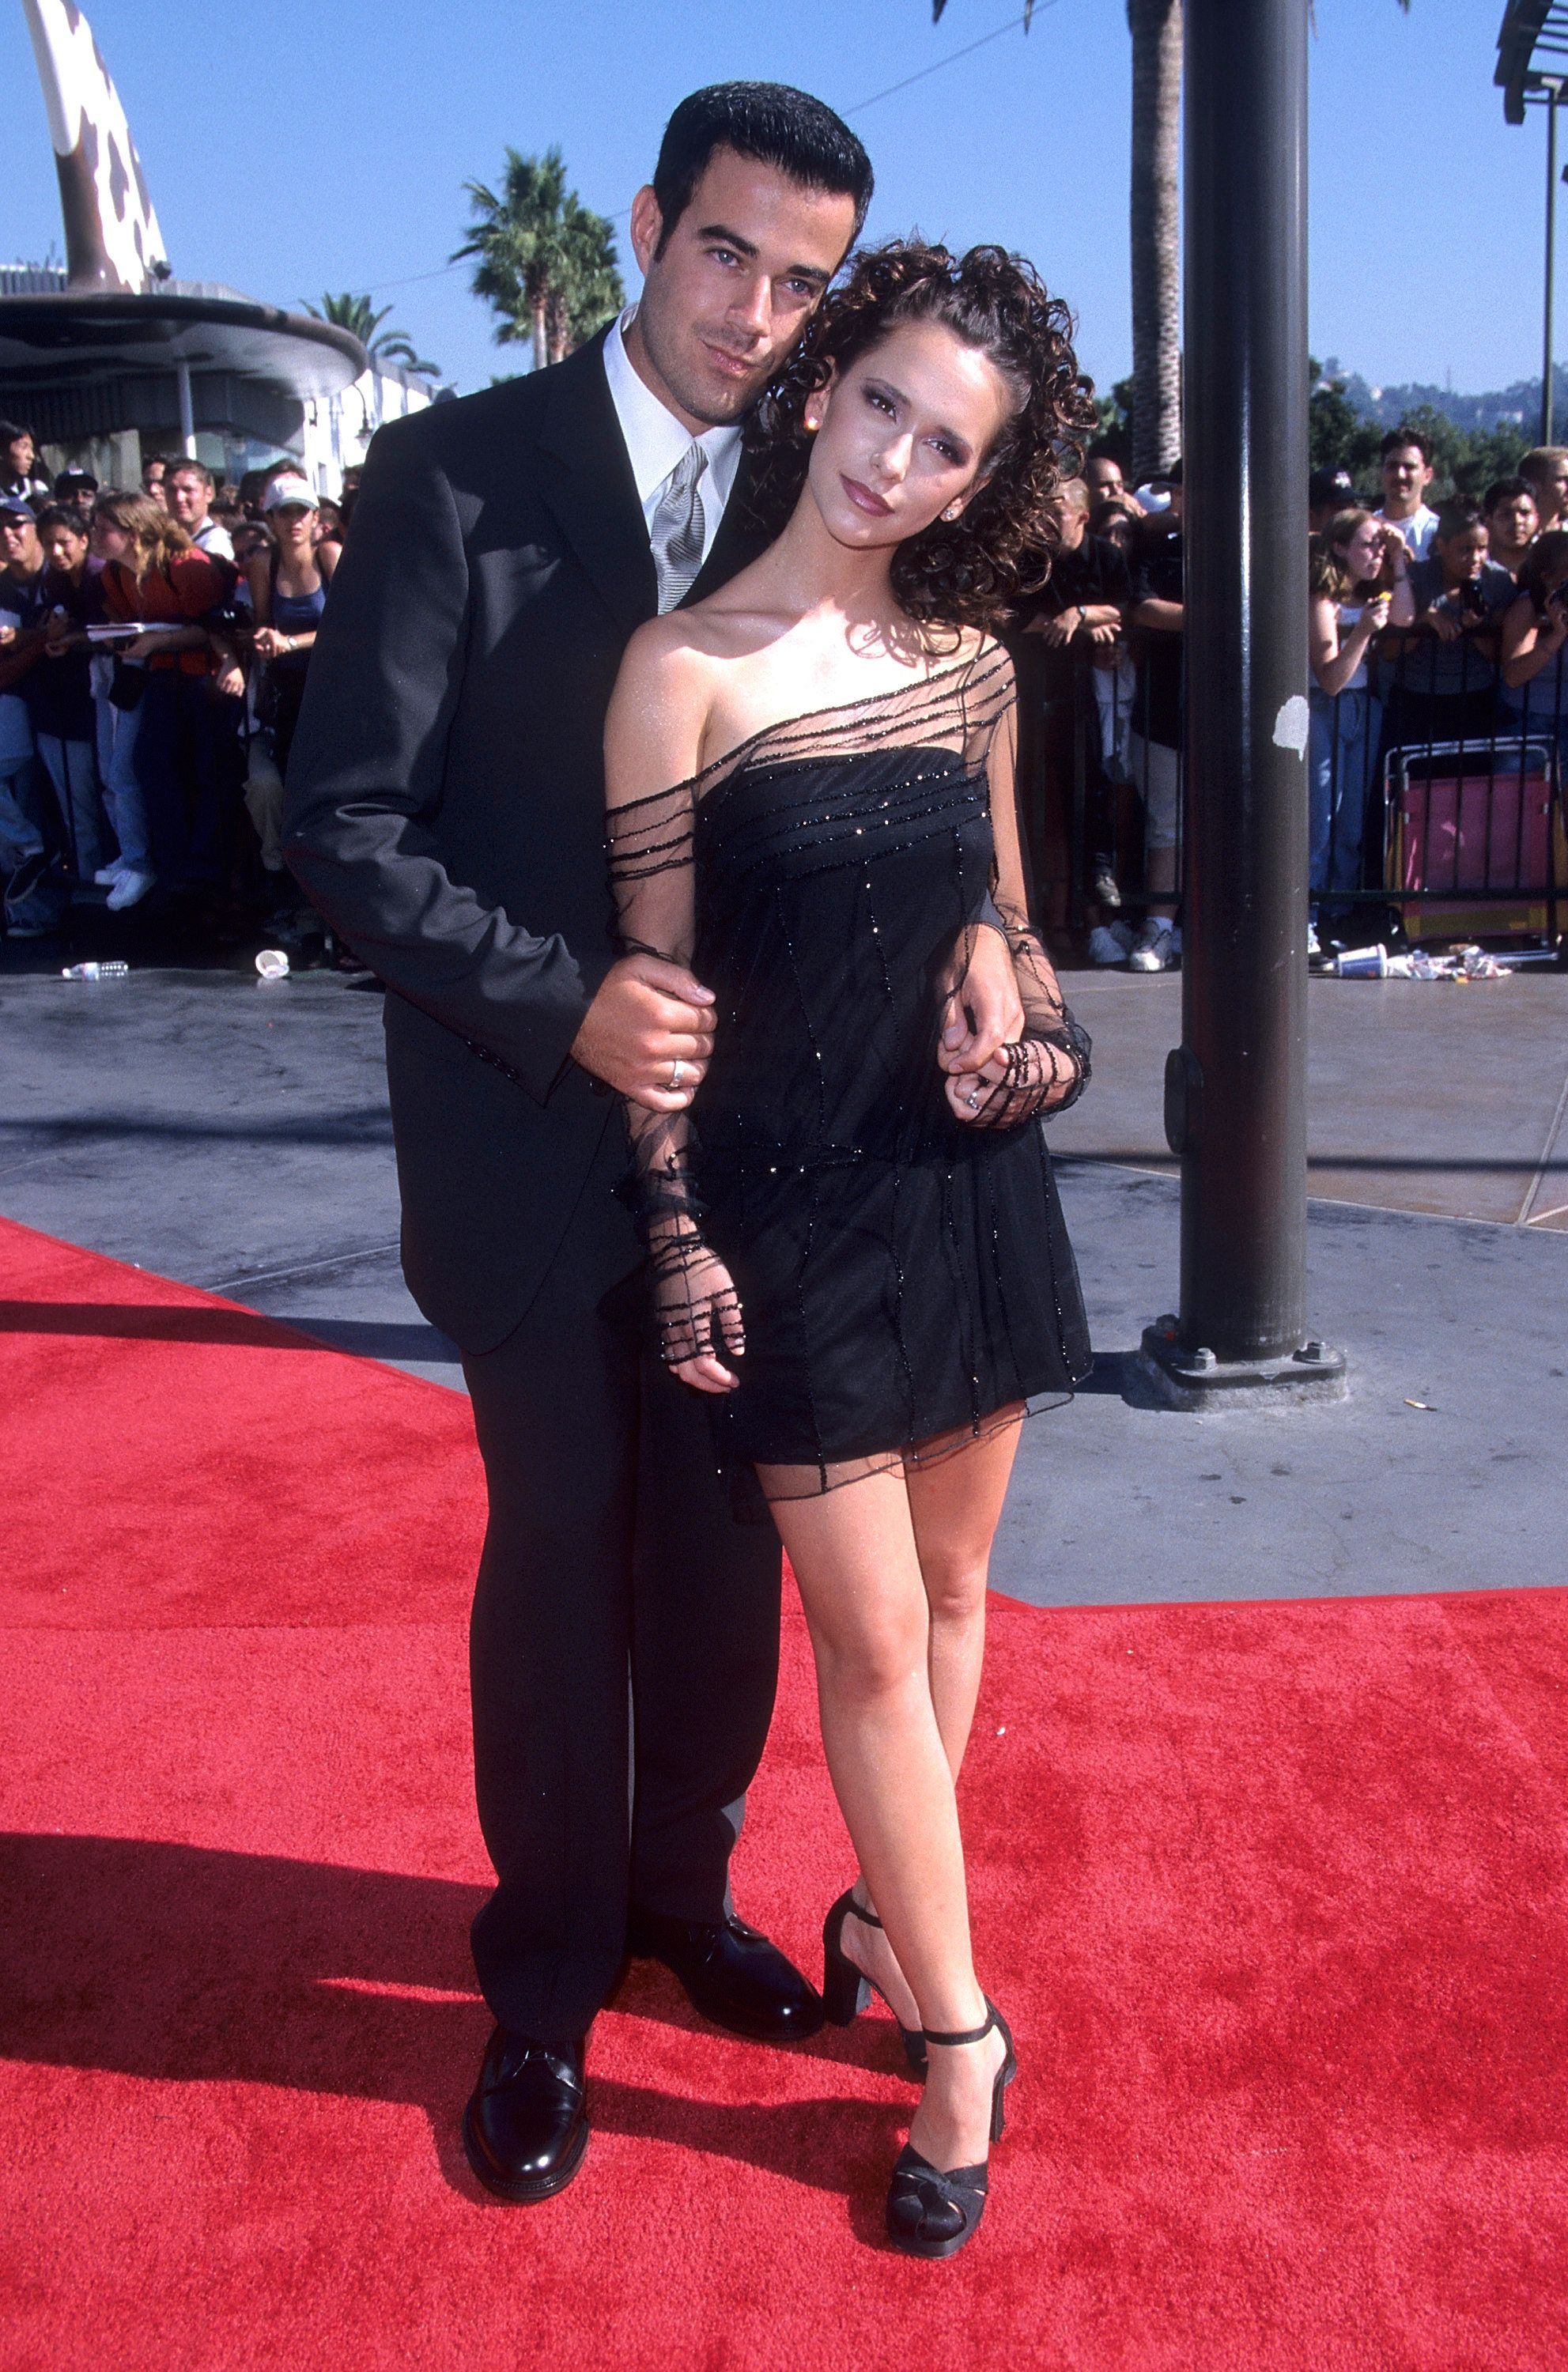 This Is What The VMAs Looked Like 20 Years Ago